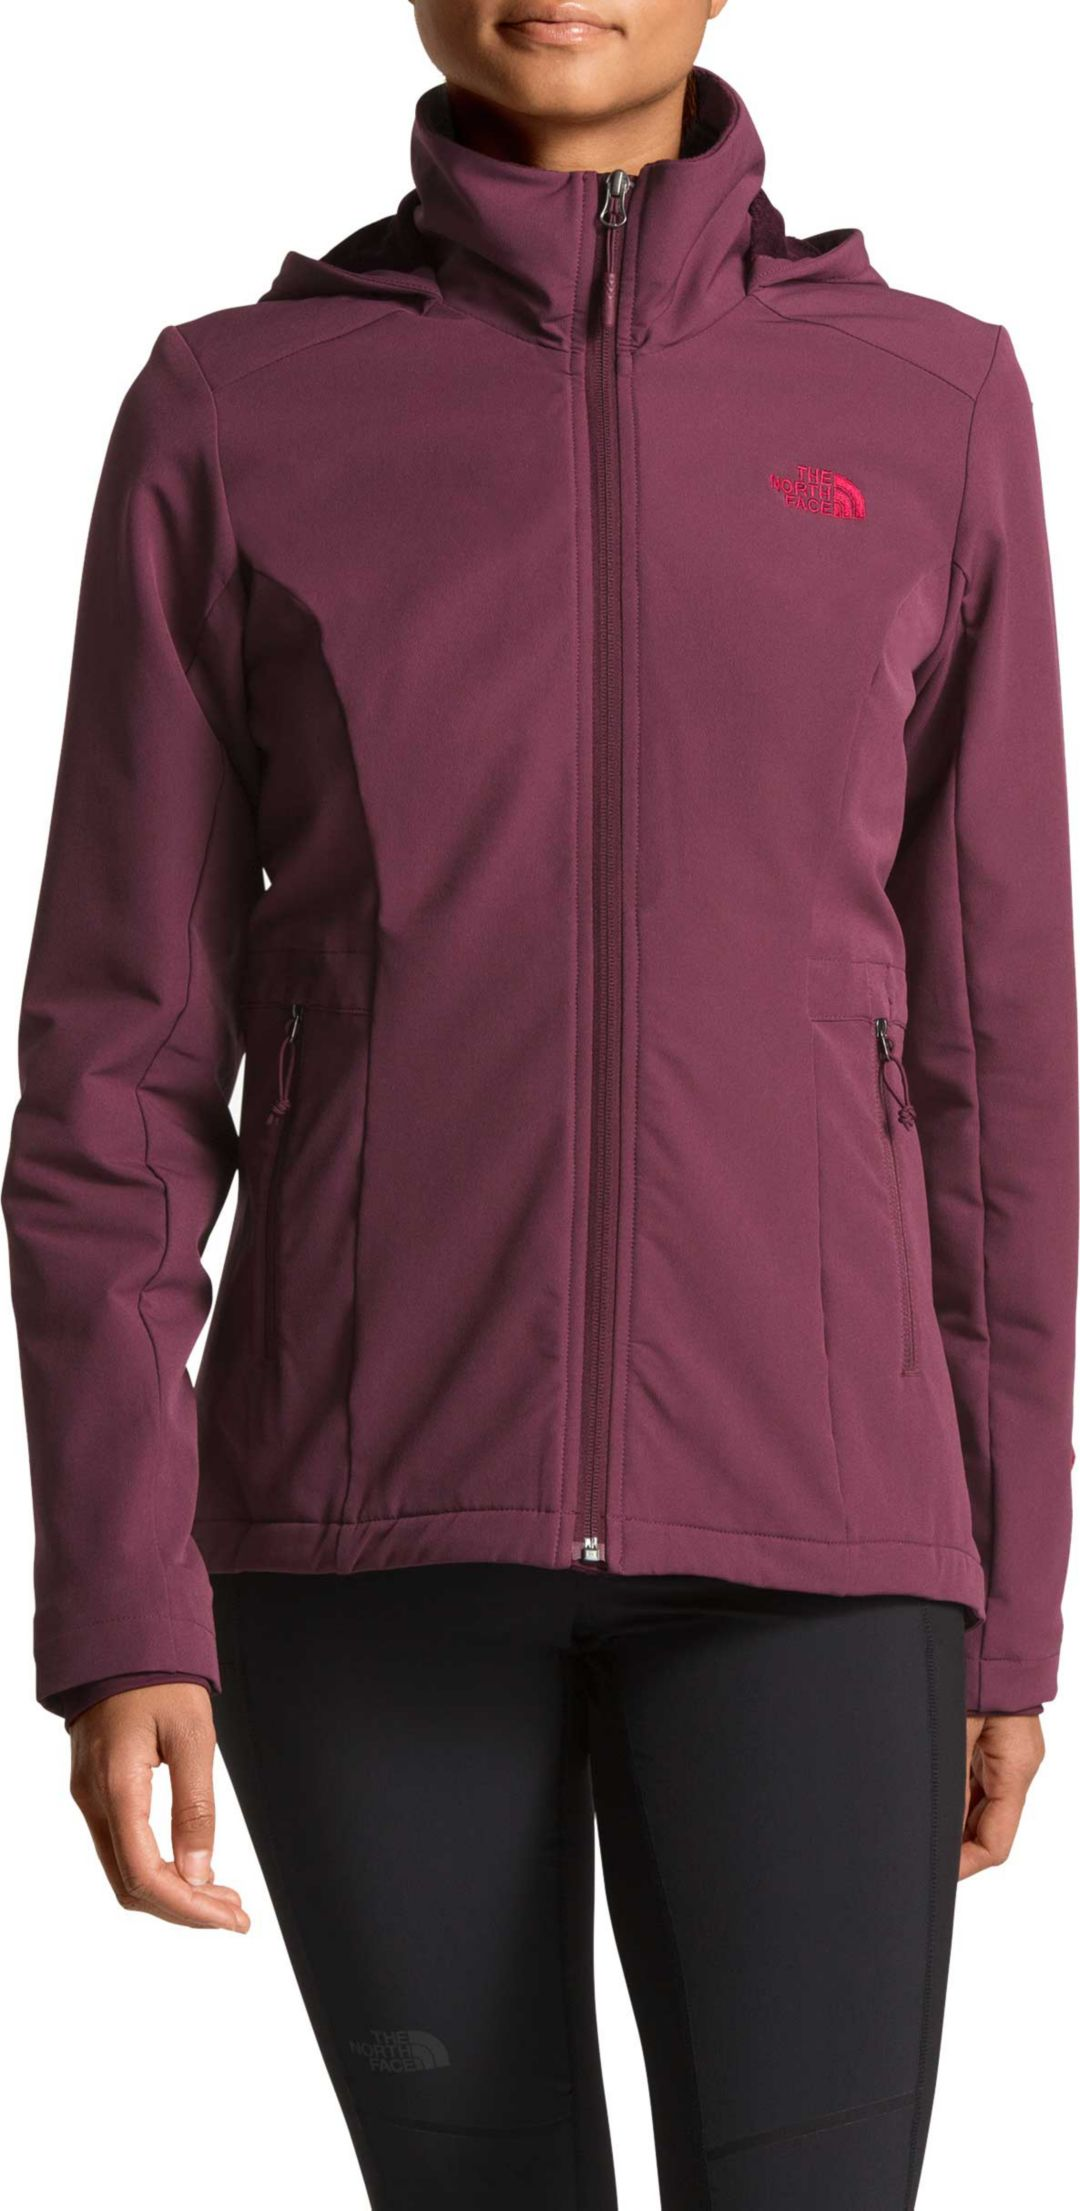 82097fc16 The North Face Women's Shelbe Raschel Soft Shell Jacket